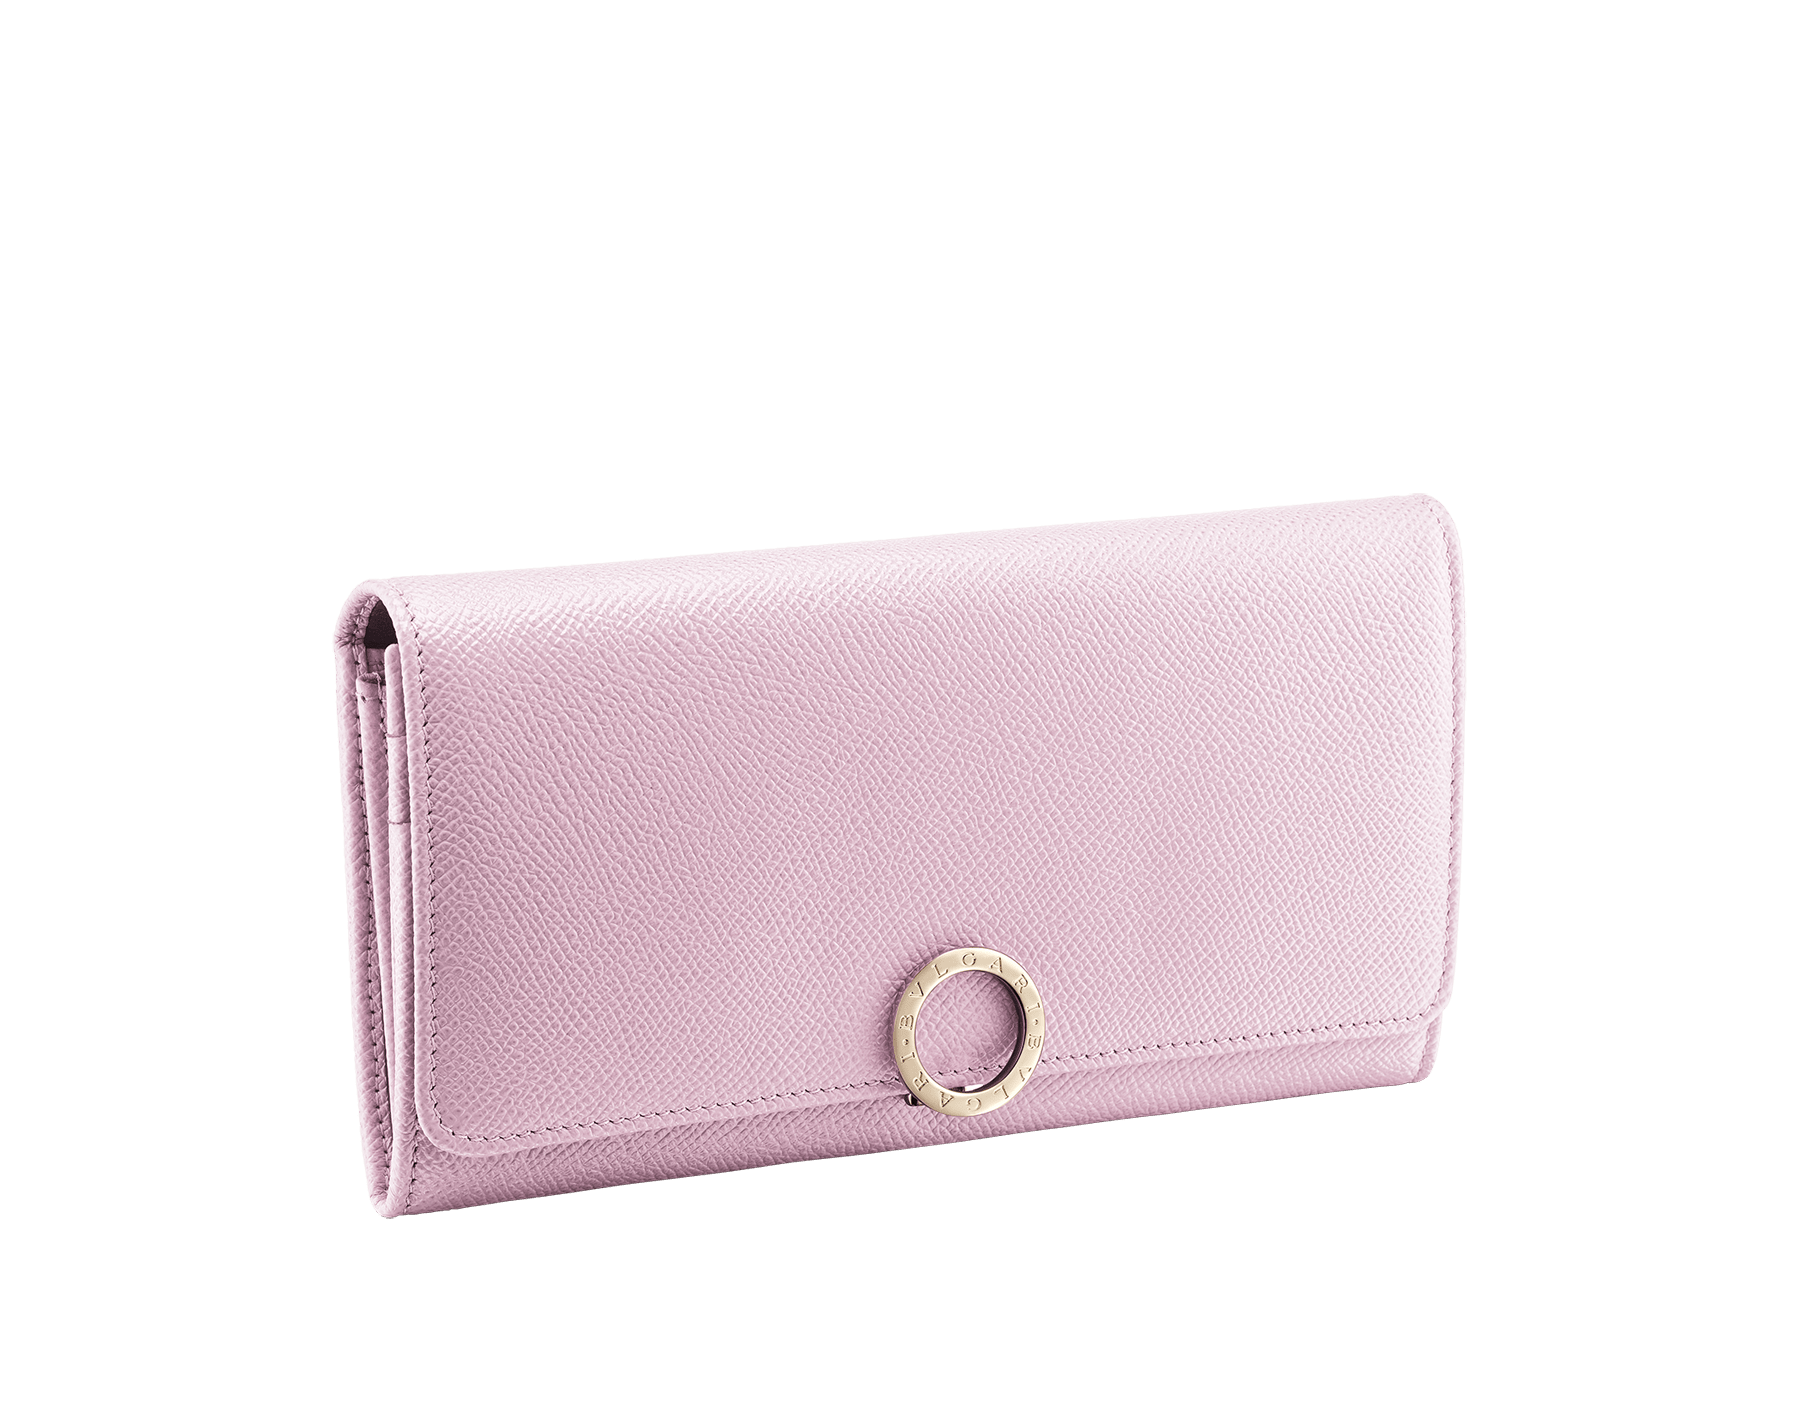 """BVLGARI BVLGARI"" large wallet in Lavender Amethyst lilac bright grained calf leather and peach nappa leather. Iconic logo closure clip in light gold-plated brass. 579-WLT-POCHE-16CCc image 1"